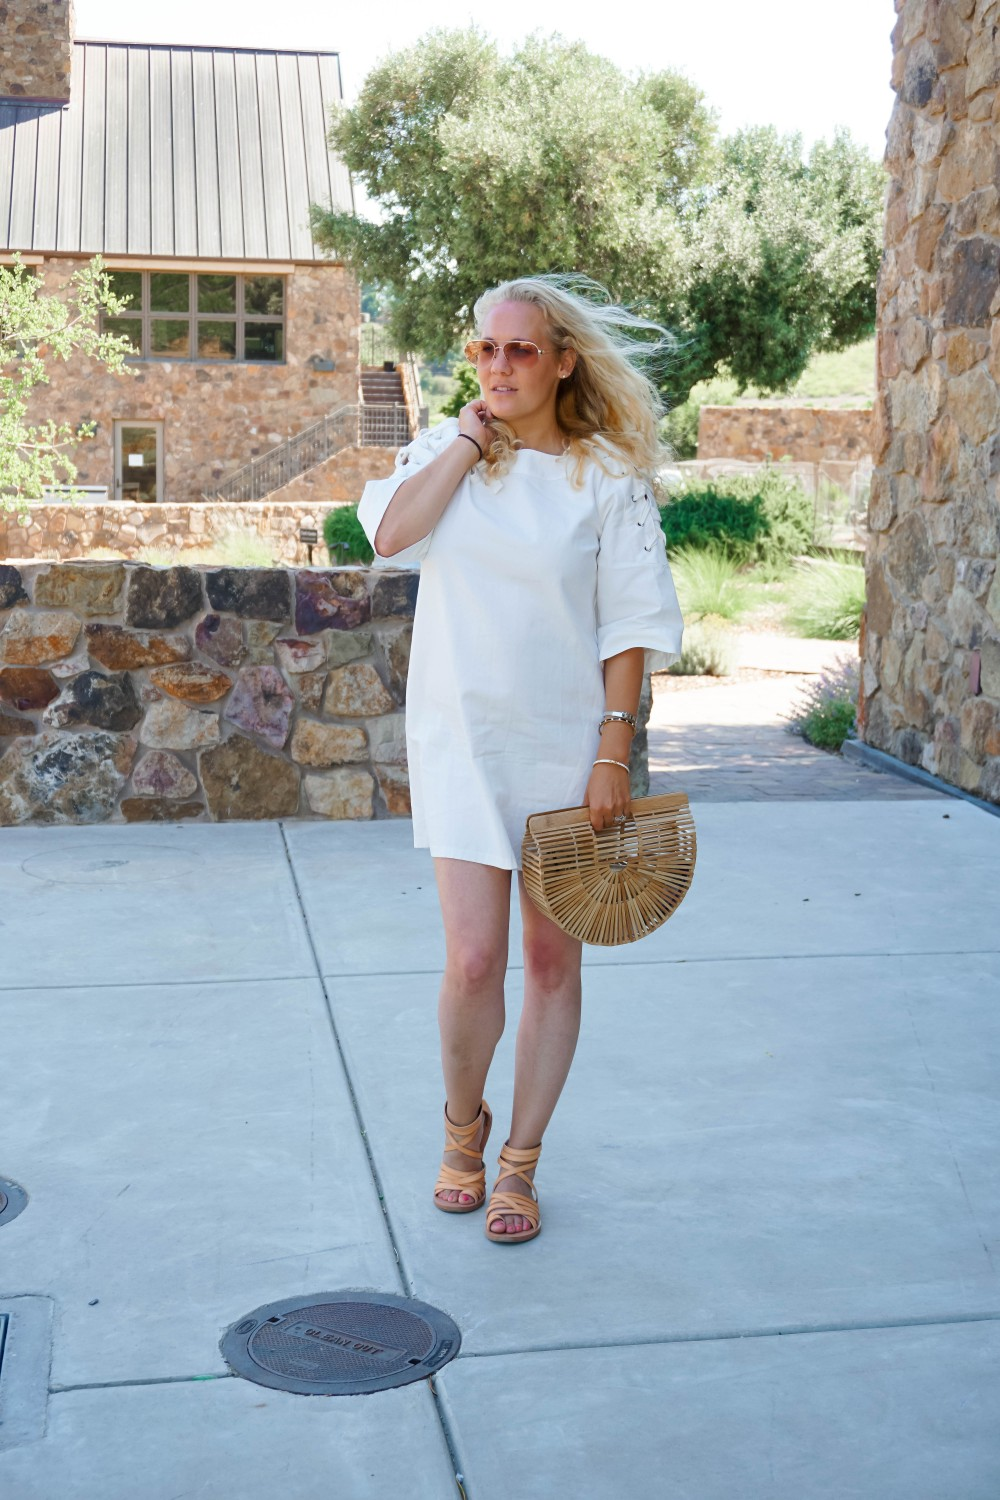 Lace-Up White Denim Dress-JOA Denim Dress-Summer Style-Bijou on the Park-Have Need Want-Outfit Inspiration-Mom Style 8